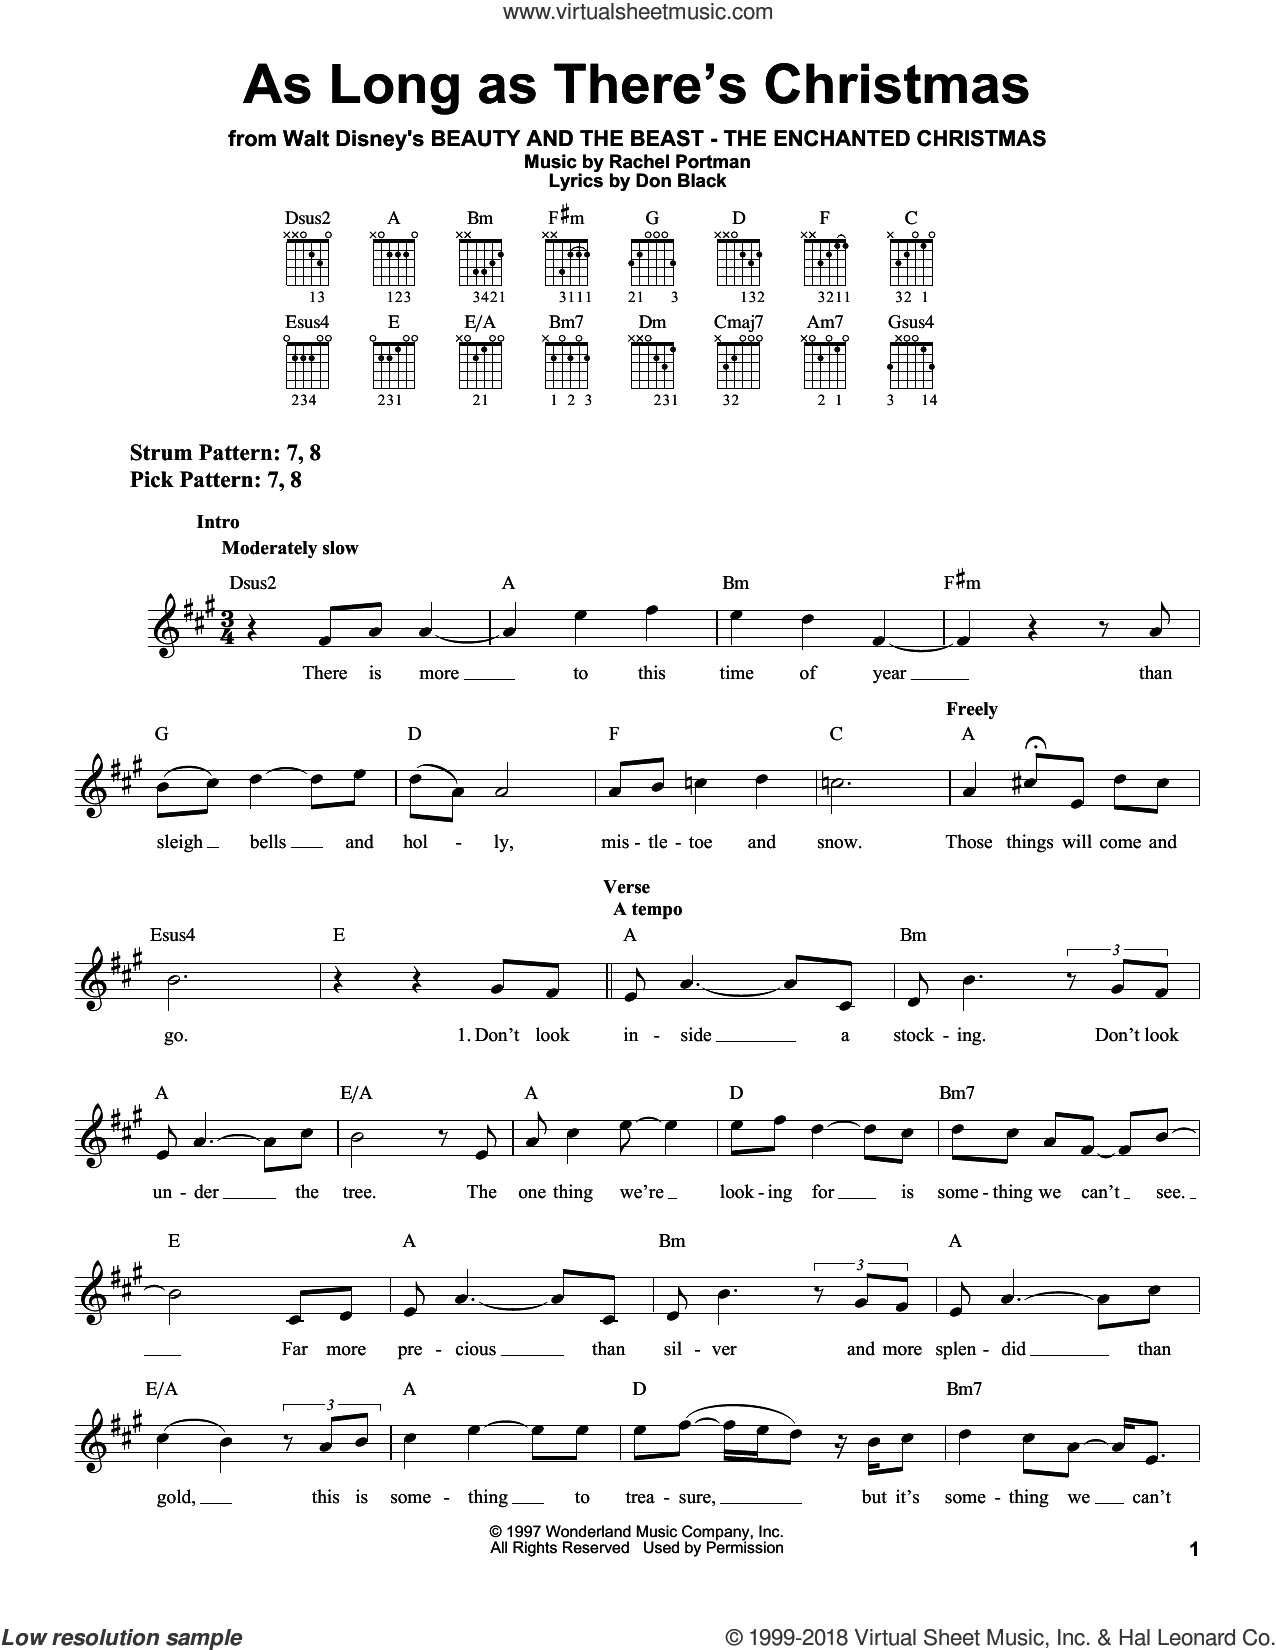 As Long As There's Christmas sheet music for guitar solo (chords) by Rachel Portman